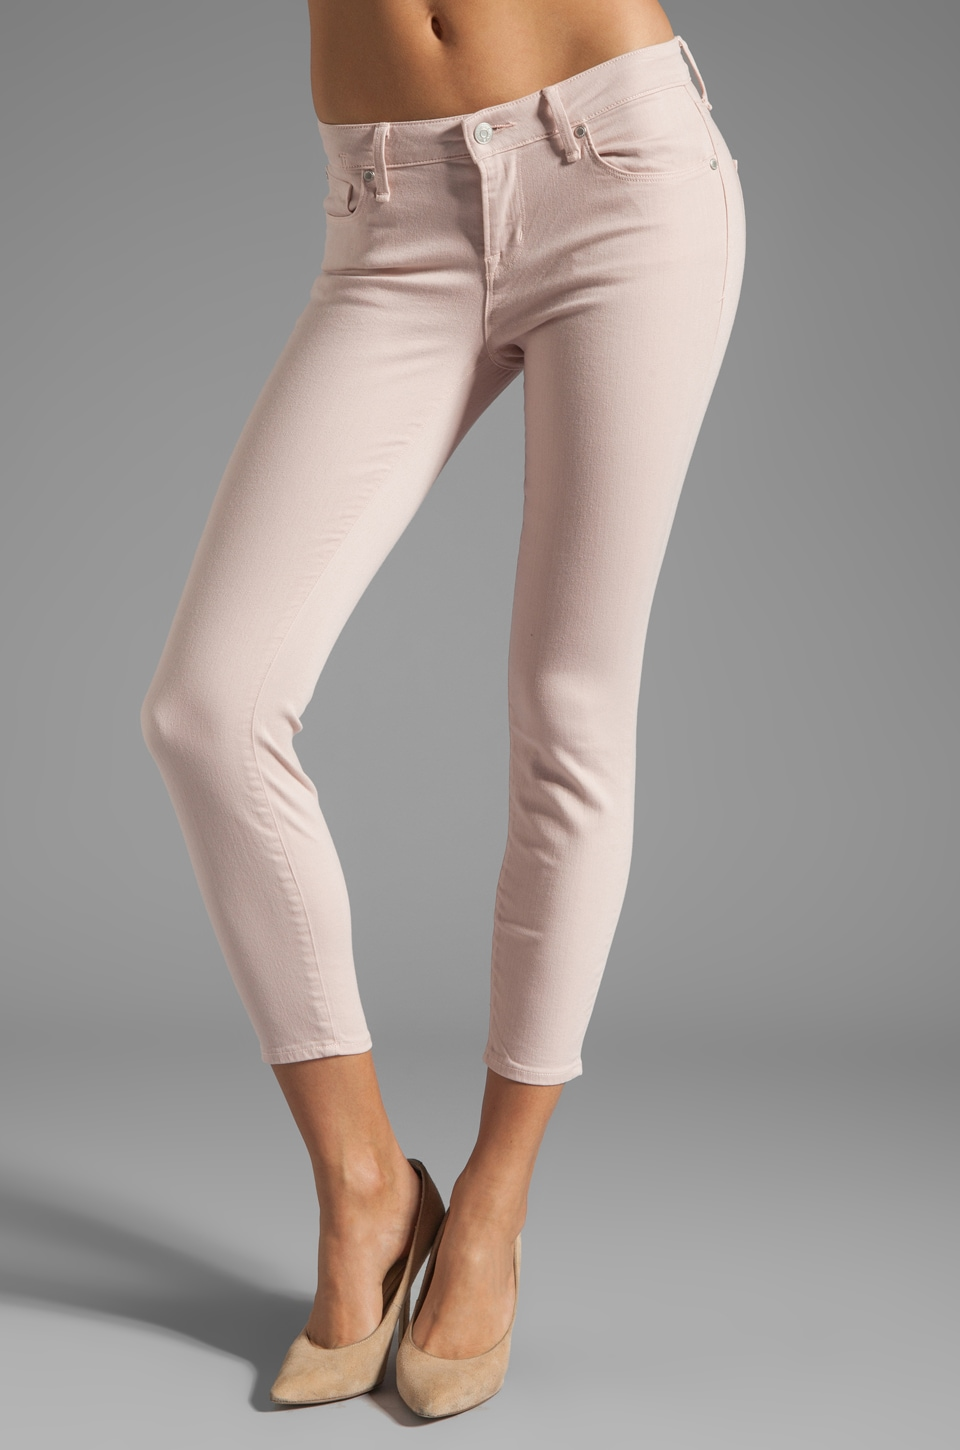 Marc by Marc Jacobs Lola Crop Skinny in Fantasia Pink